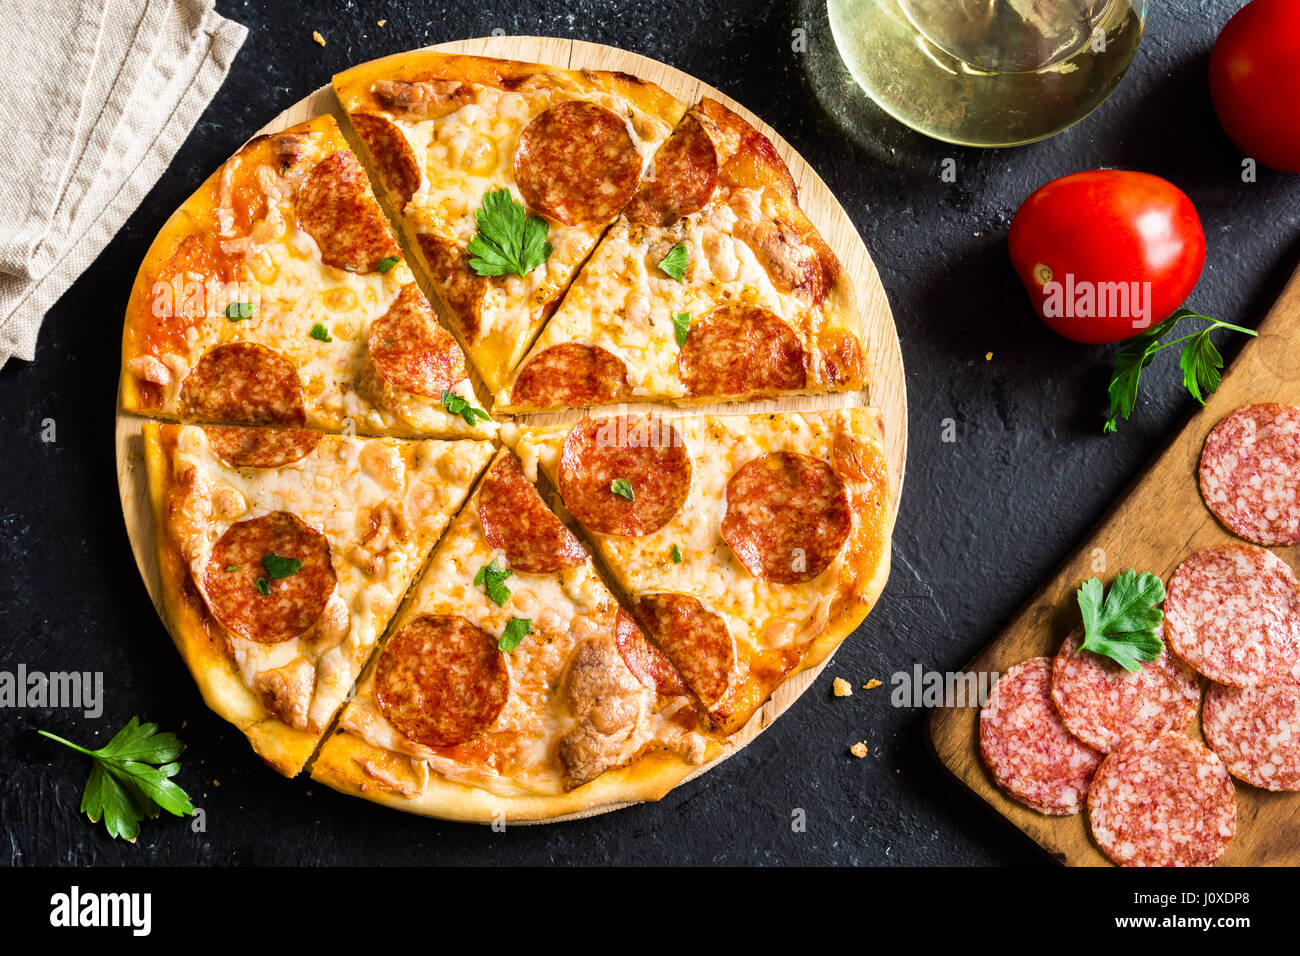 Pepperoni Pizza with ingredients - Fresh homemade pizza with pepperoni, cheese and tomato sauce and ingredients - Stock Image